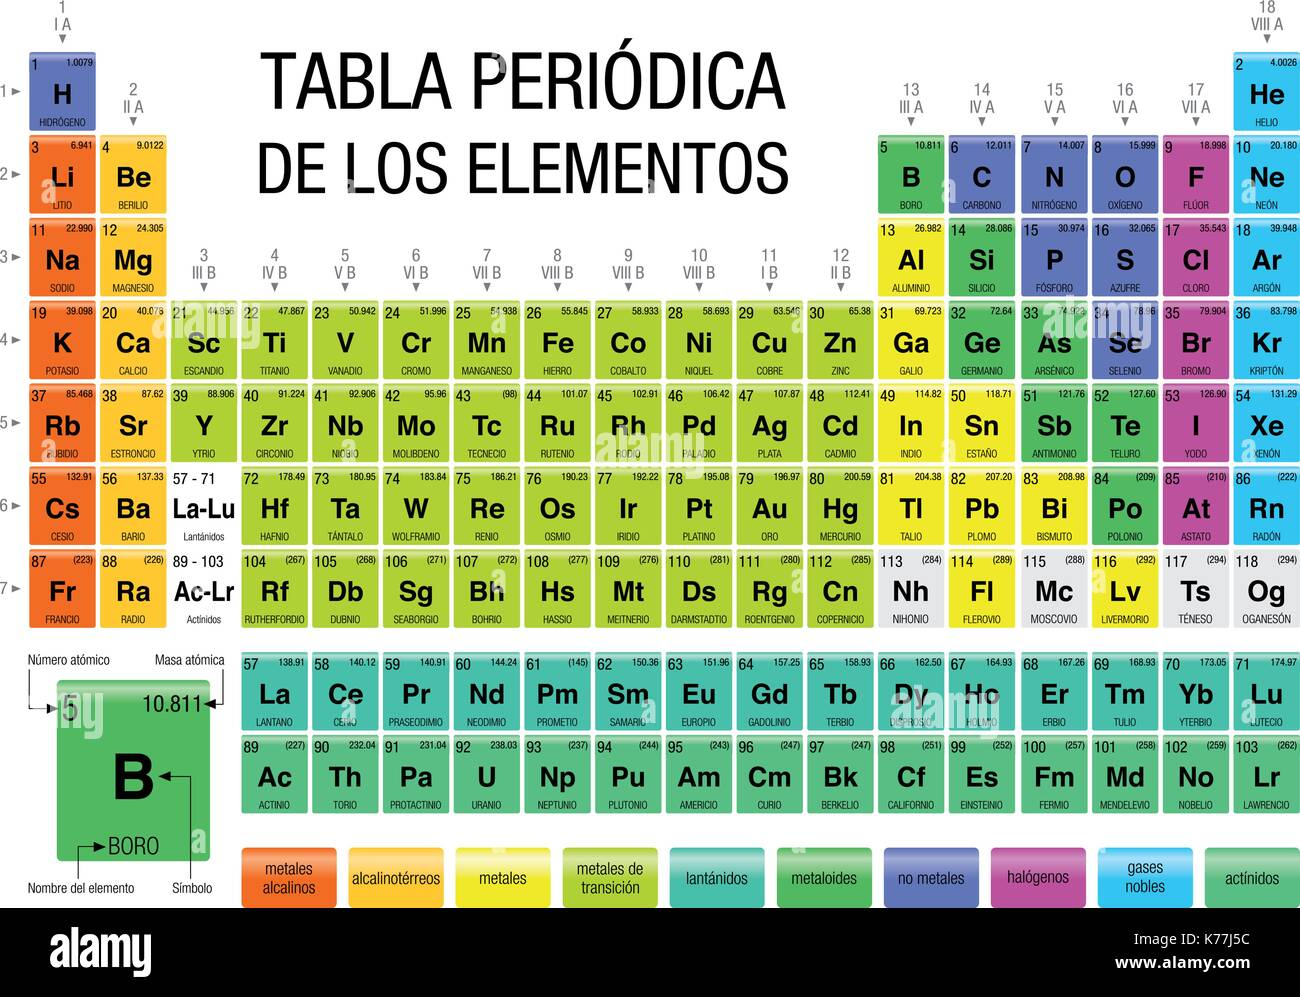 Charming TABLA PERIODICA DE LOS ELEMENTOS  Periodic Table Of Elements In Spanish  Language  With The 4 New Elements Included On November 28, 2016